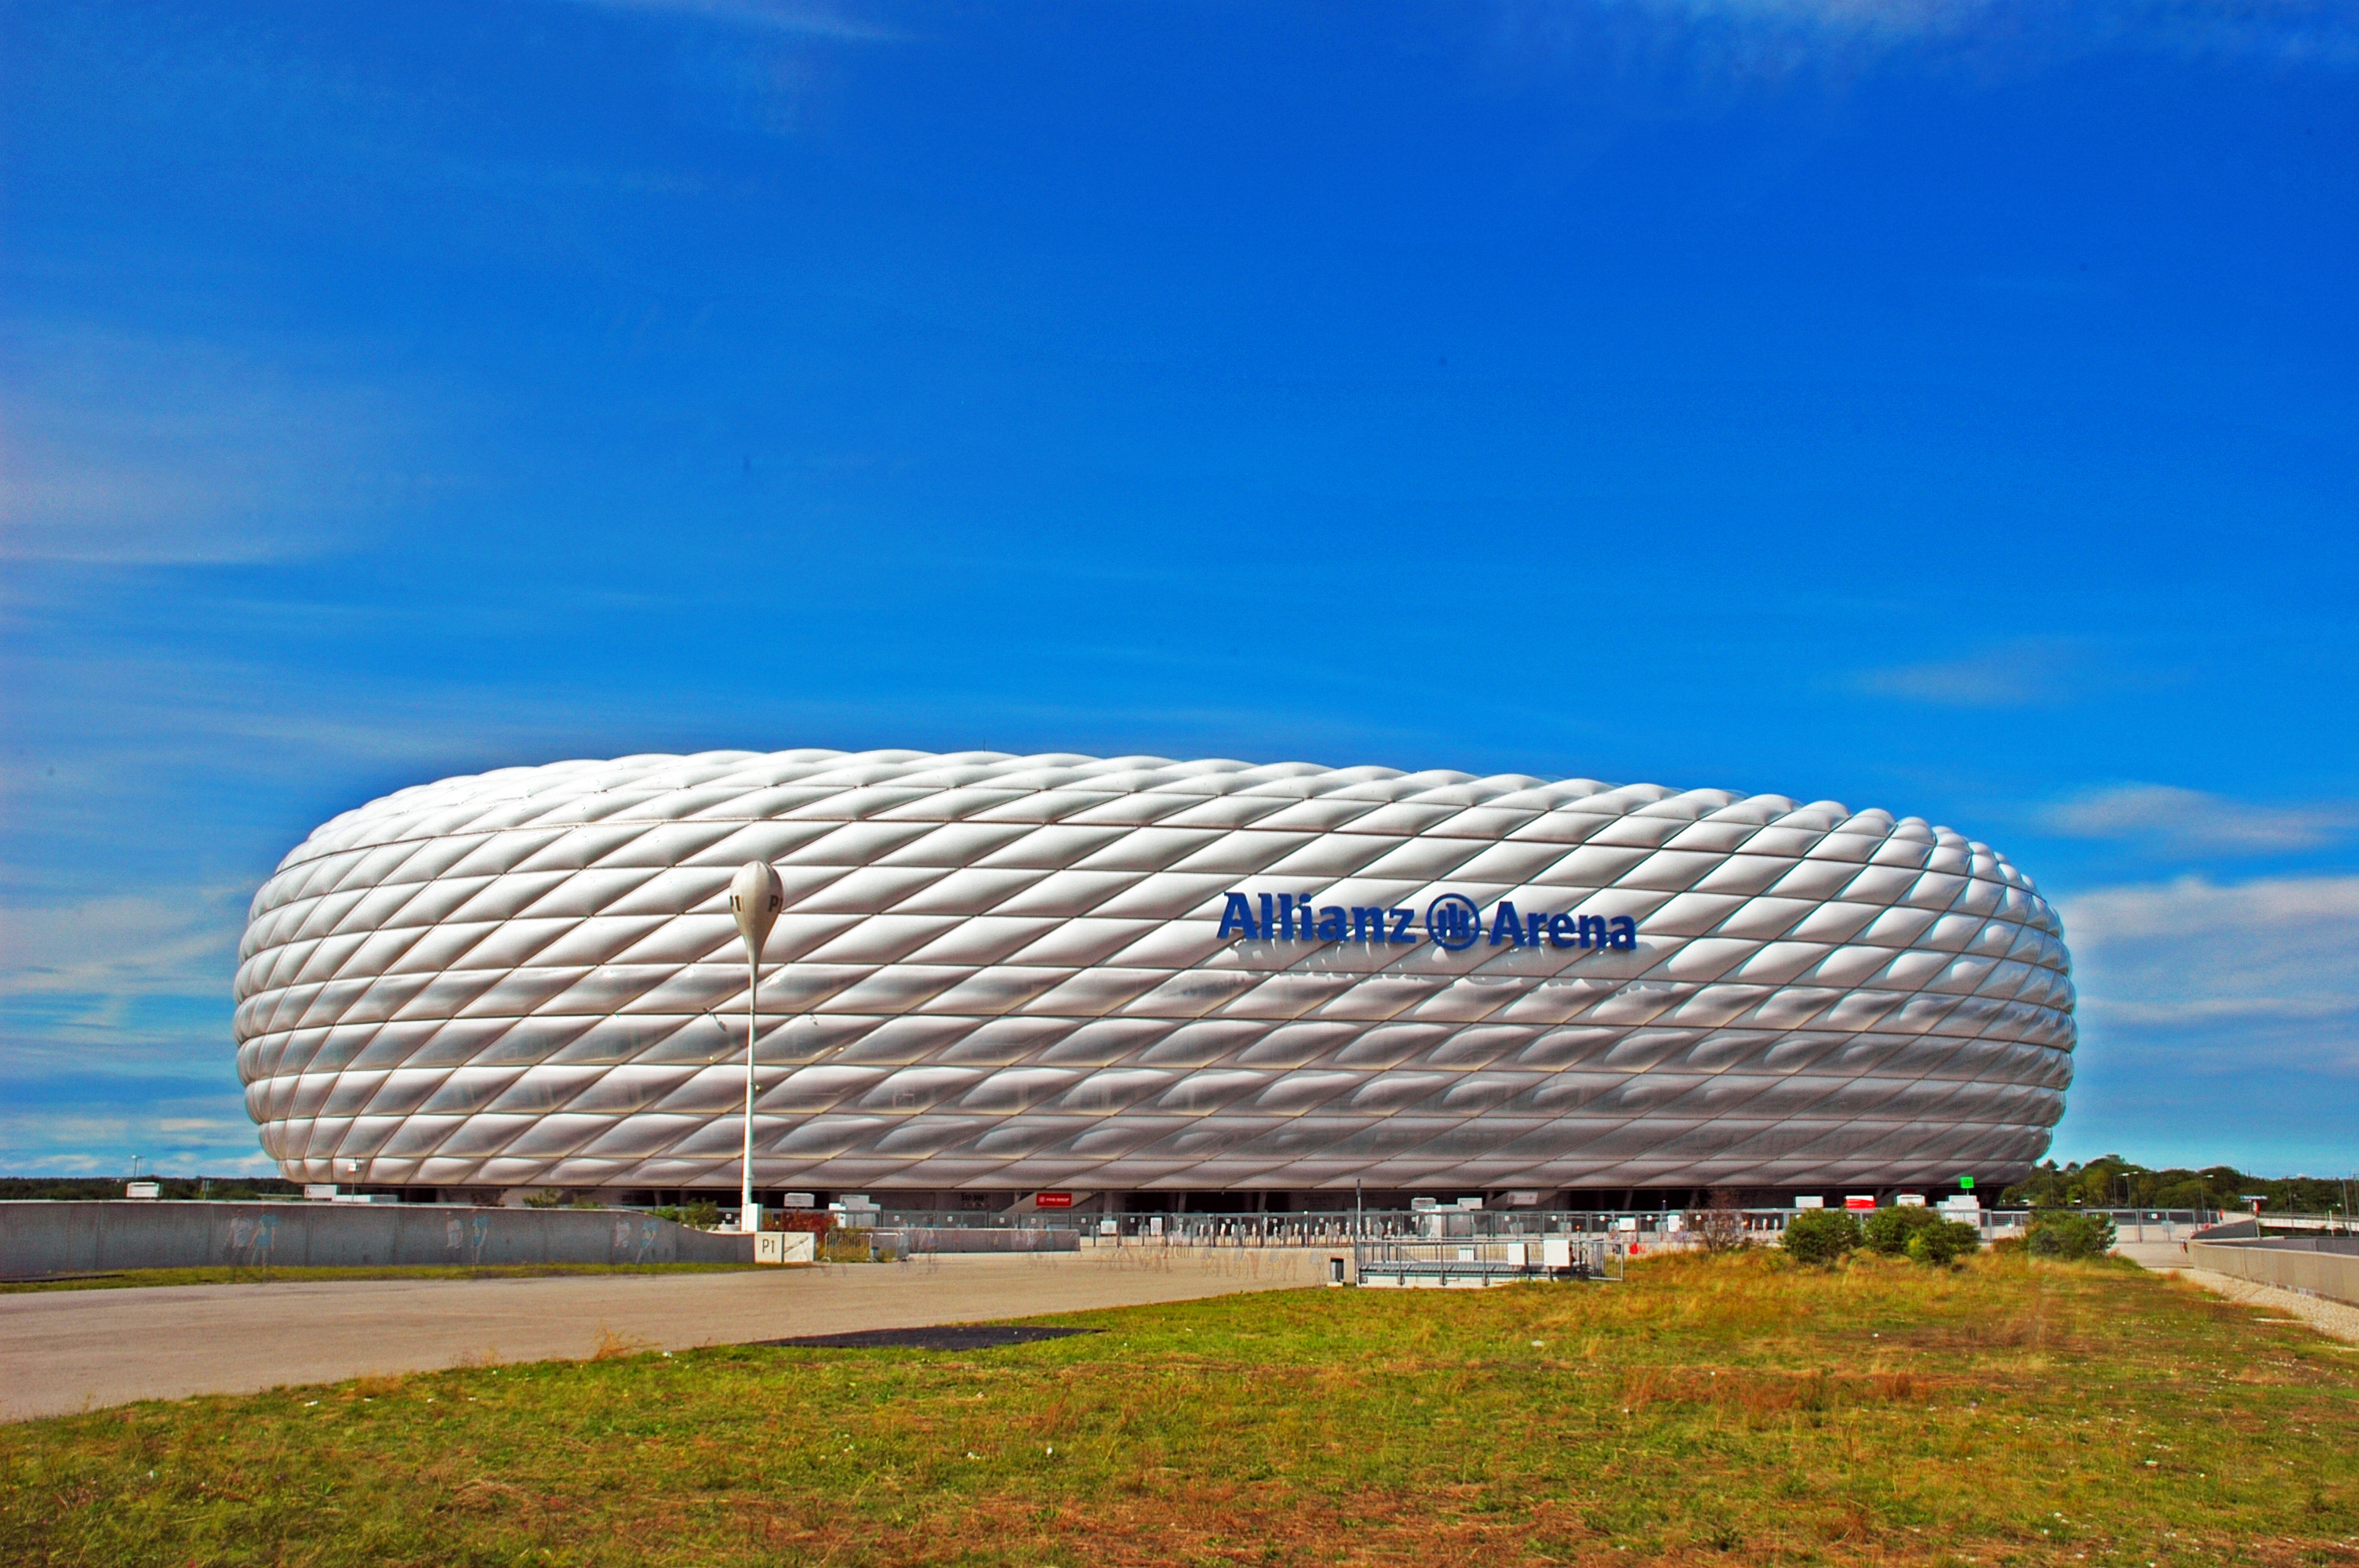 file allianz arena muenchen wikimedia commons. Black Bedroom Furniture Sets. Home Design Ideas